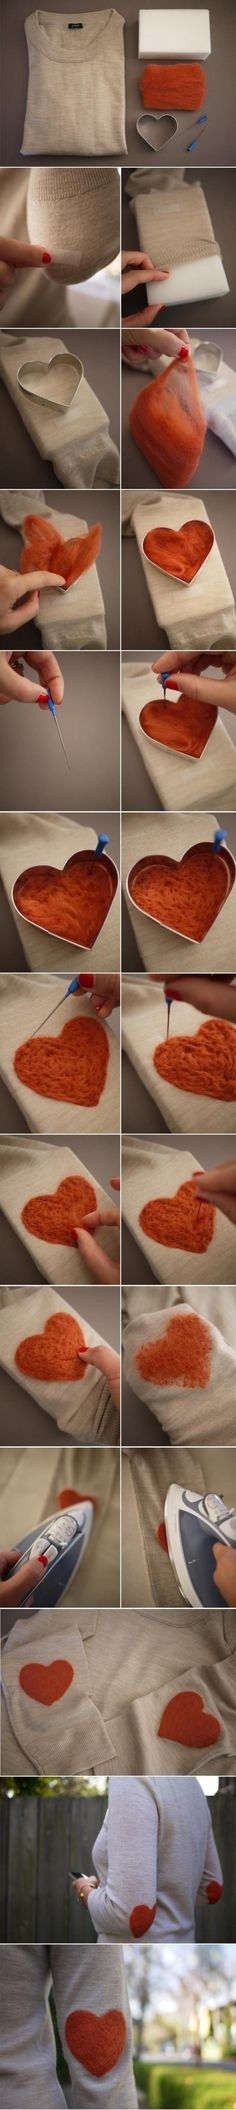 This is a great fashion idea and a fun diy